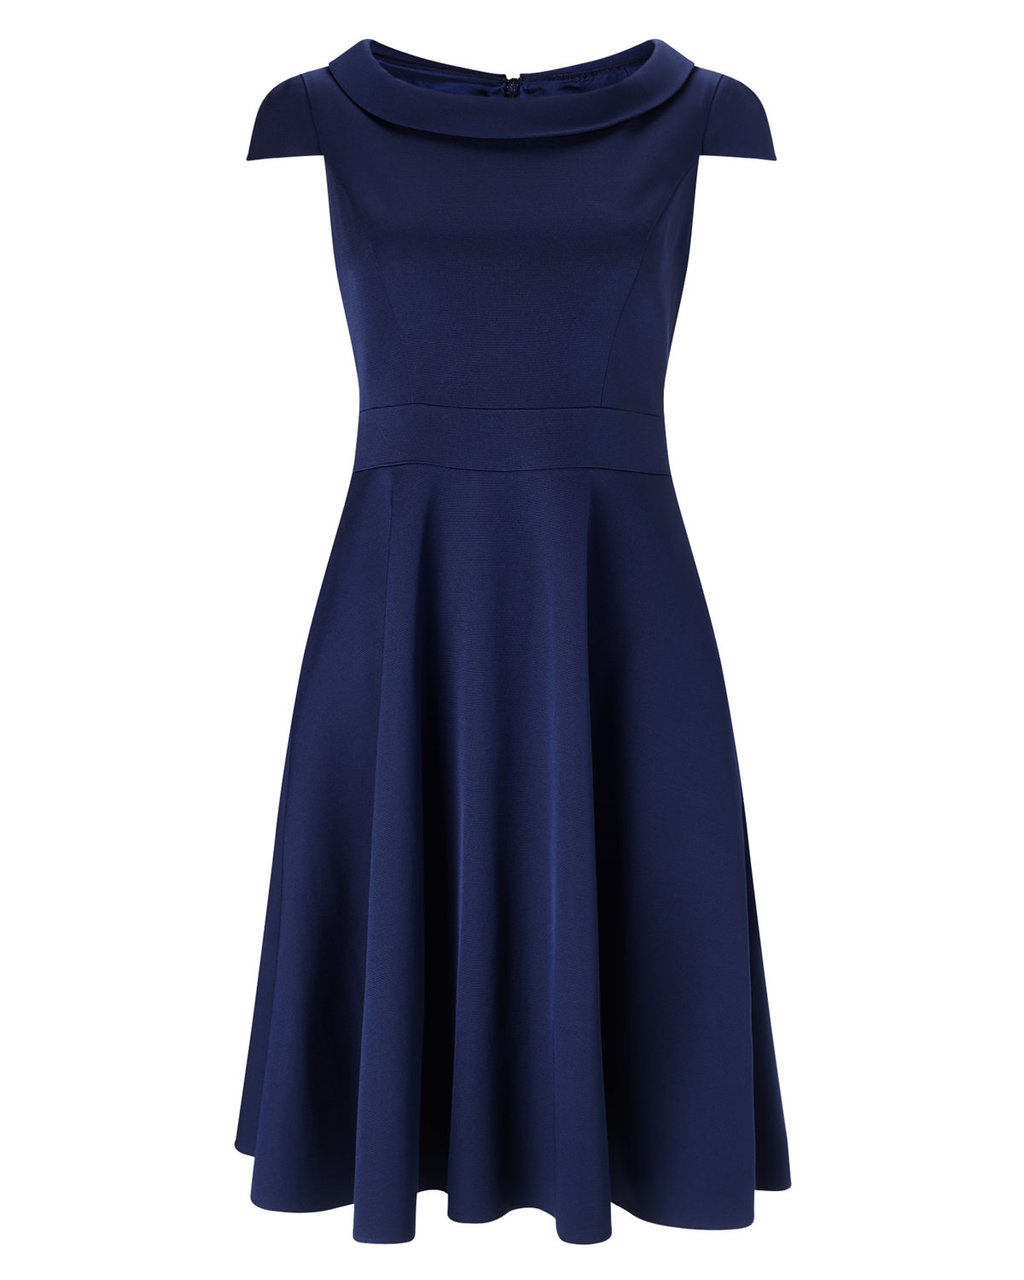 Nicola Fit And Flare Dress - neckline: round neck; sleeve style: capped; pattern: plain; predominant colour: navy; occasions: evening, occasion; length: on the knee; fit: fitted at waist & bust; style: fit & flare; fibres: viscose/rayon - stretch; sleeve length: short sleeve; pattern type: fabric; pattern size: standard; texture group: jersey - stretchy/drapey; season: a/w 2015